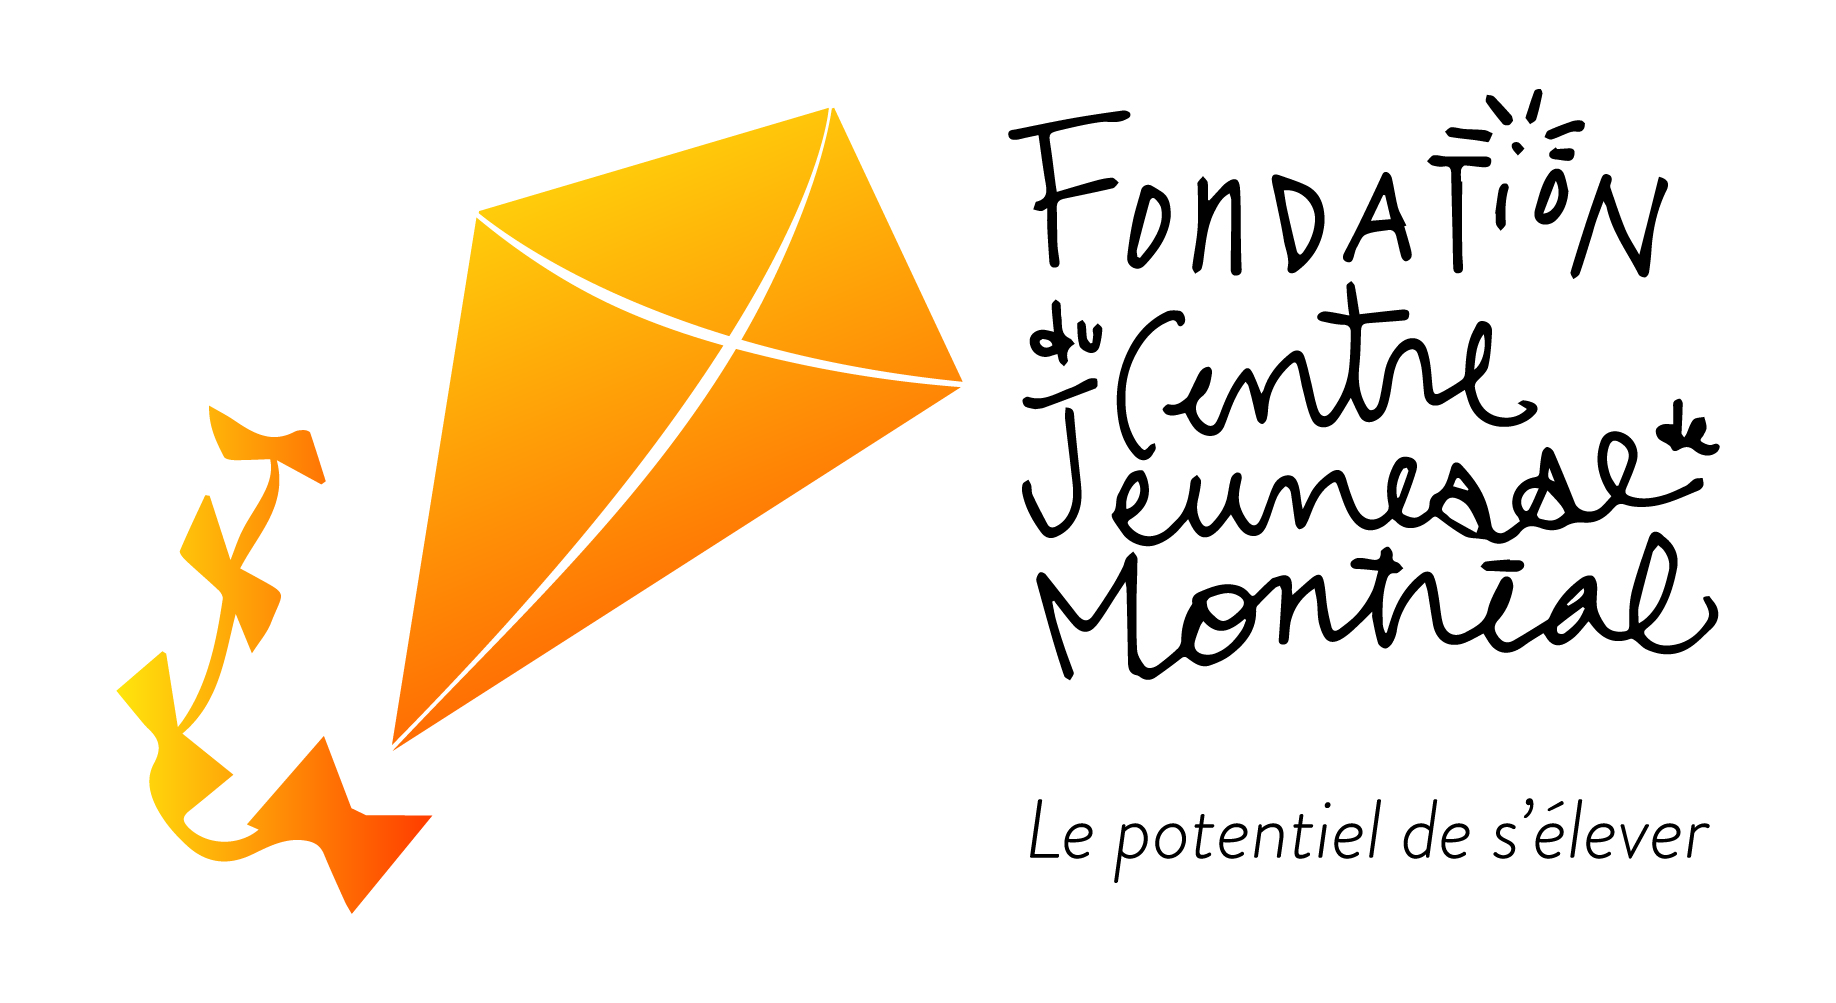 FCJM_Logo_Descripteur_Horizontal_Couleur_CMYK.jpg